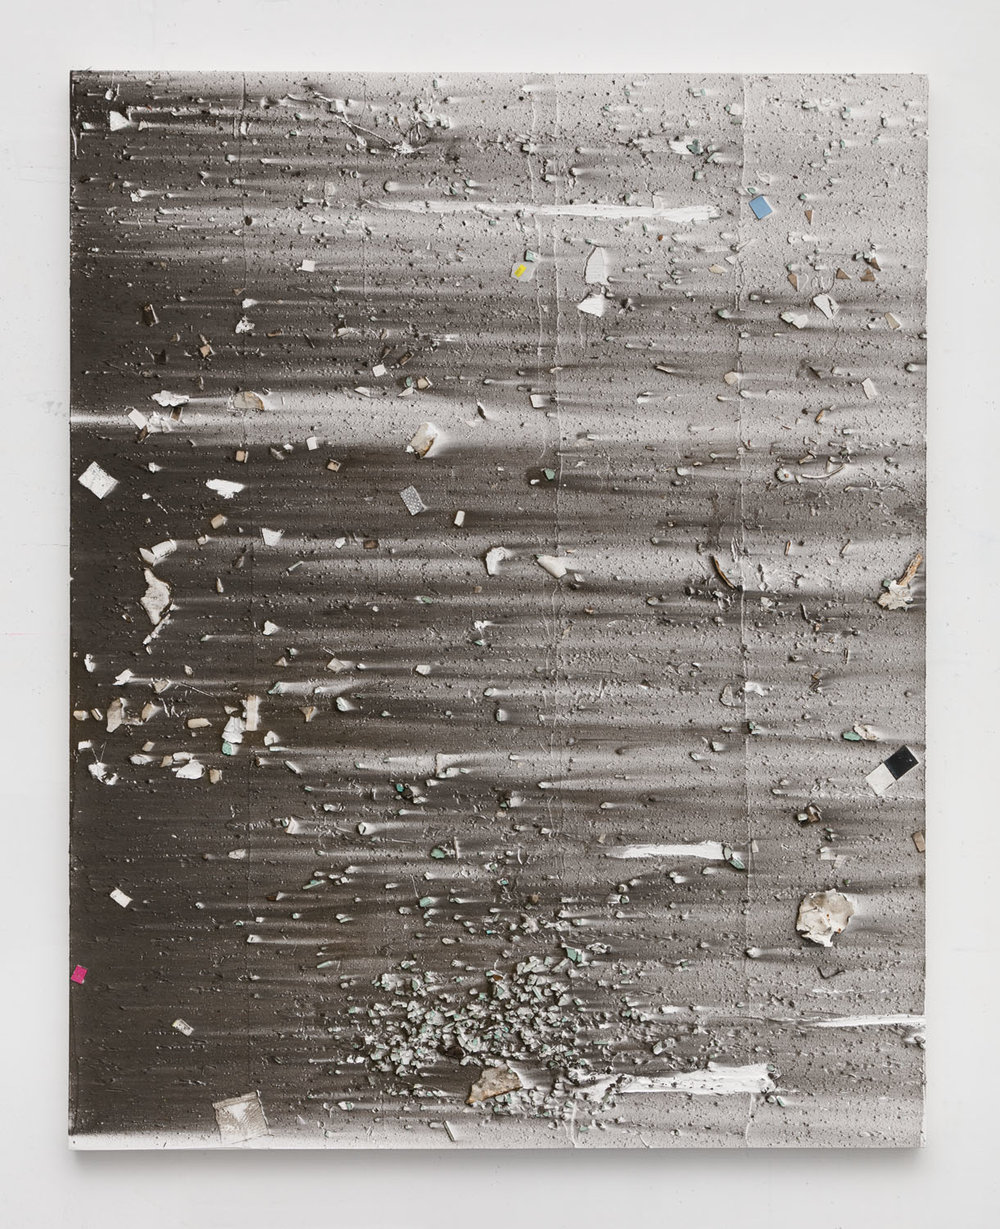 Thomas Fougeirol  Untitled, 2016  Mixed media on canvas  63 x 51 inches